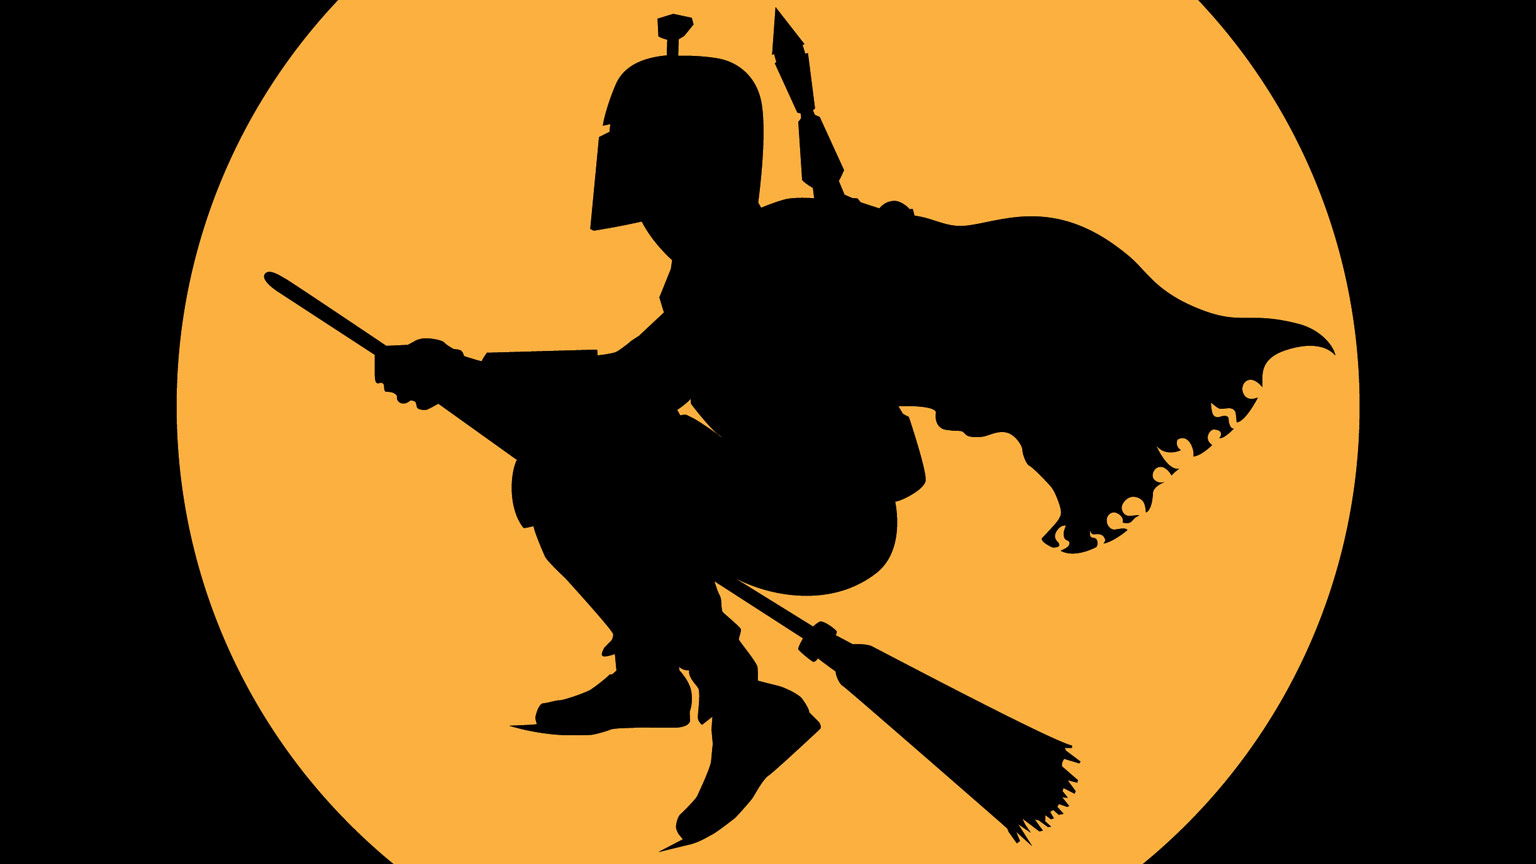 Cartoon image of Boba Fett flying on a broomstick in the moonlight!